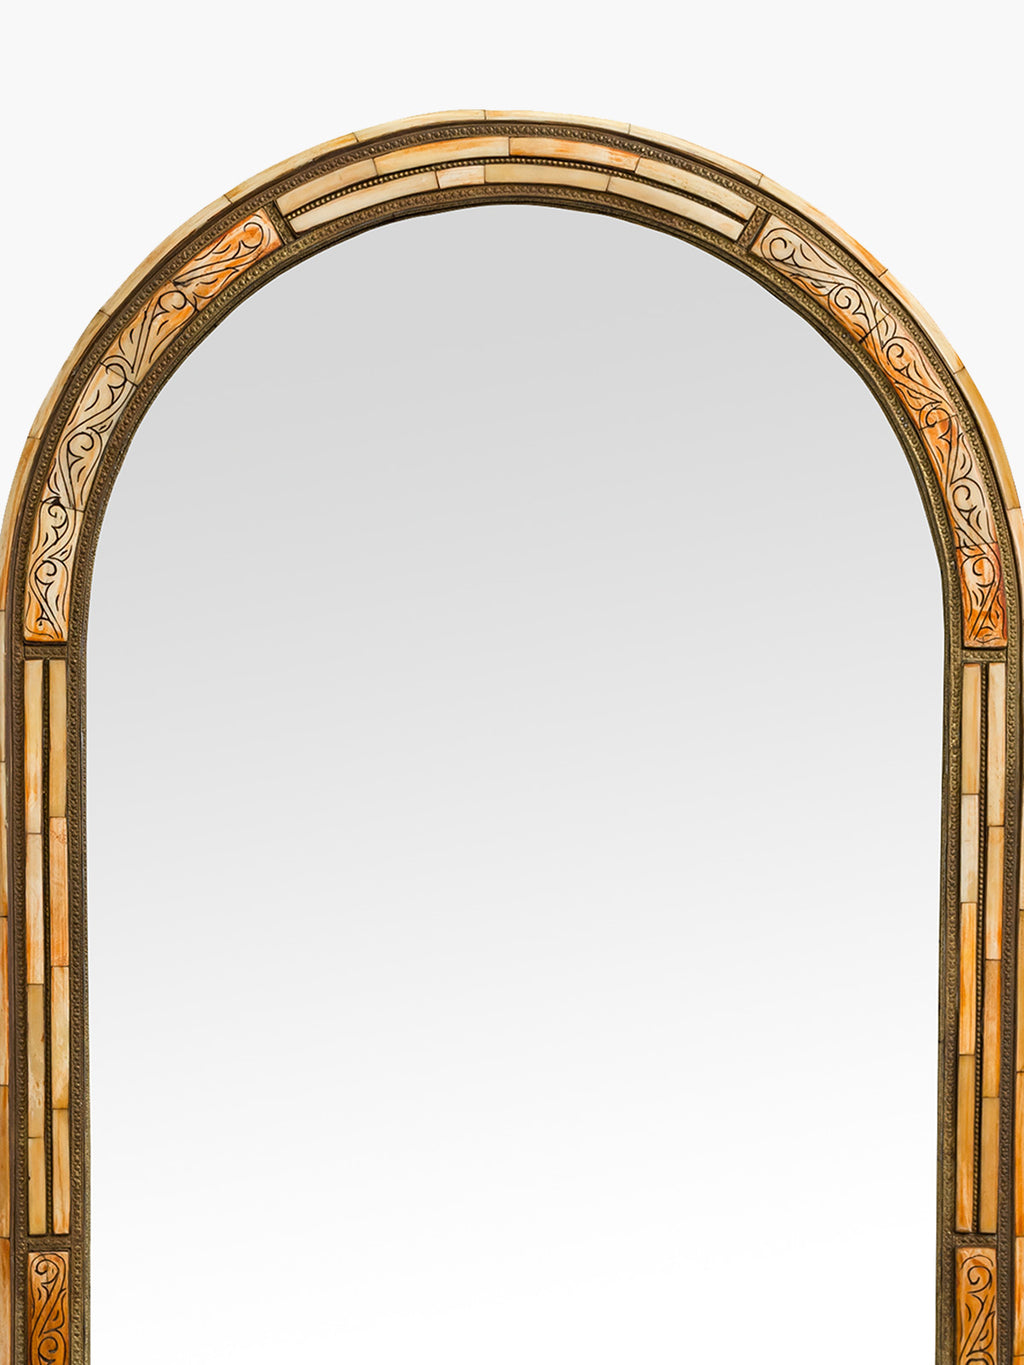 Golden Arch Shaped Metal Mirror